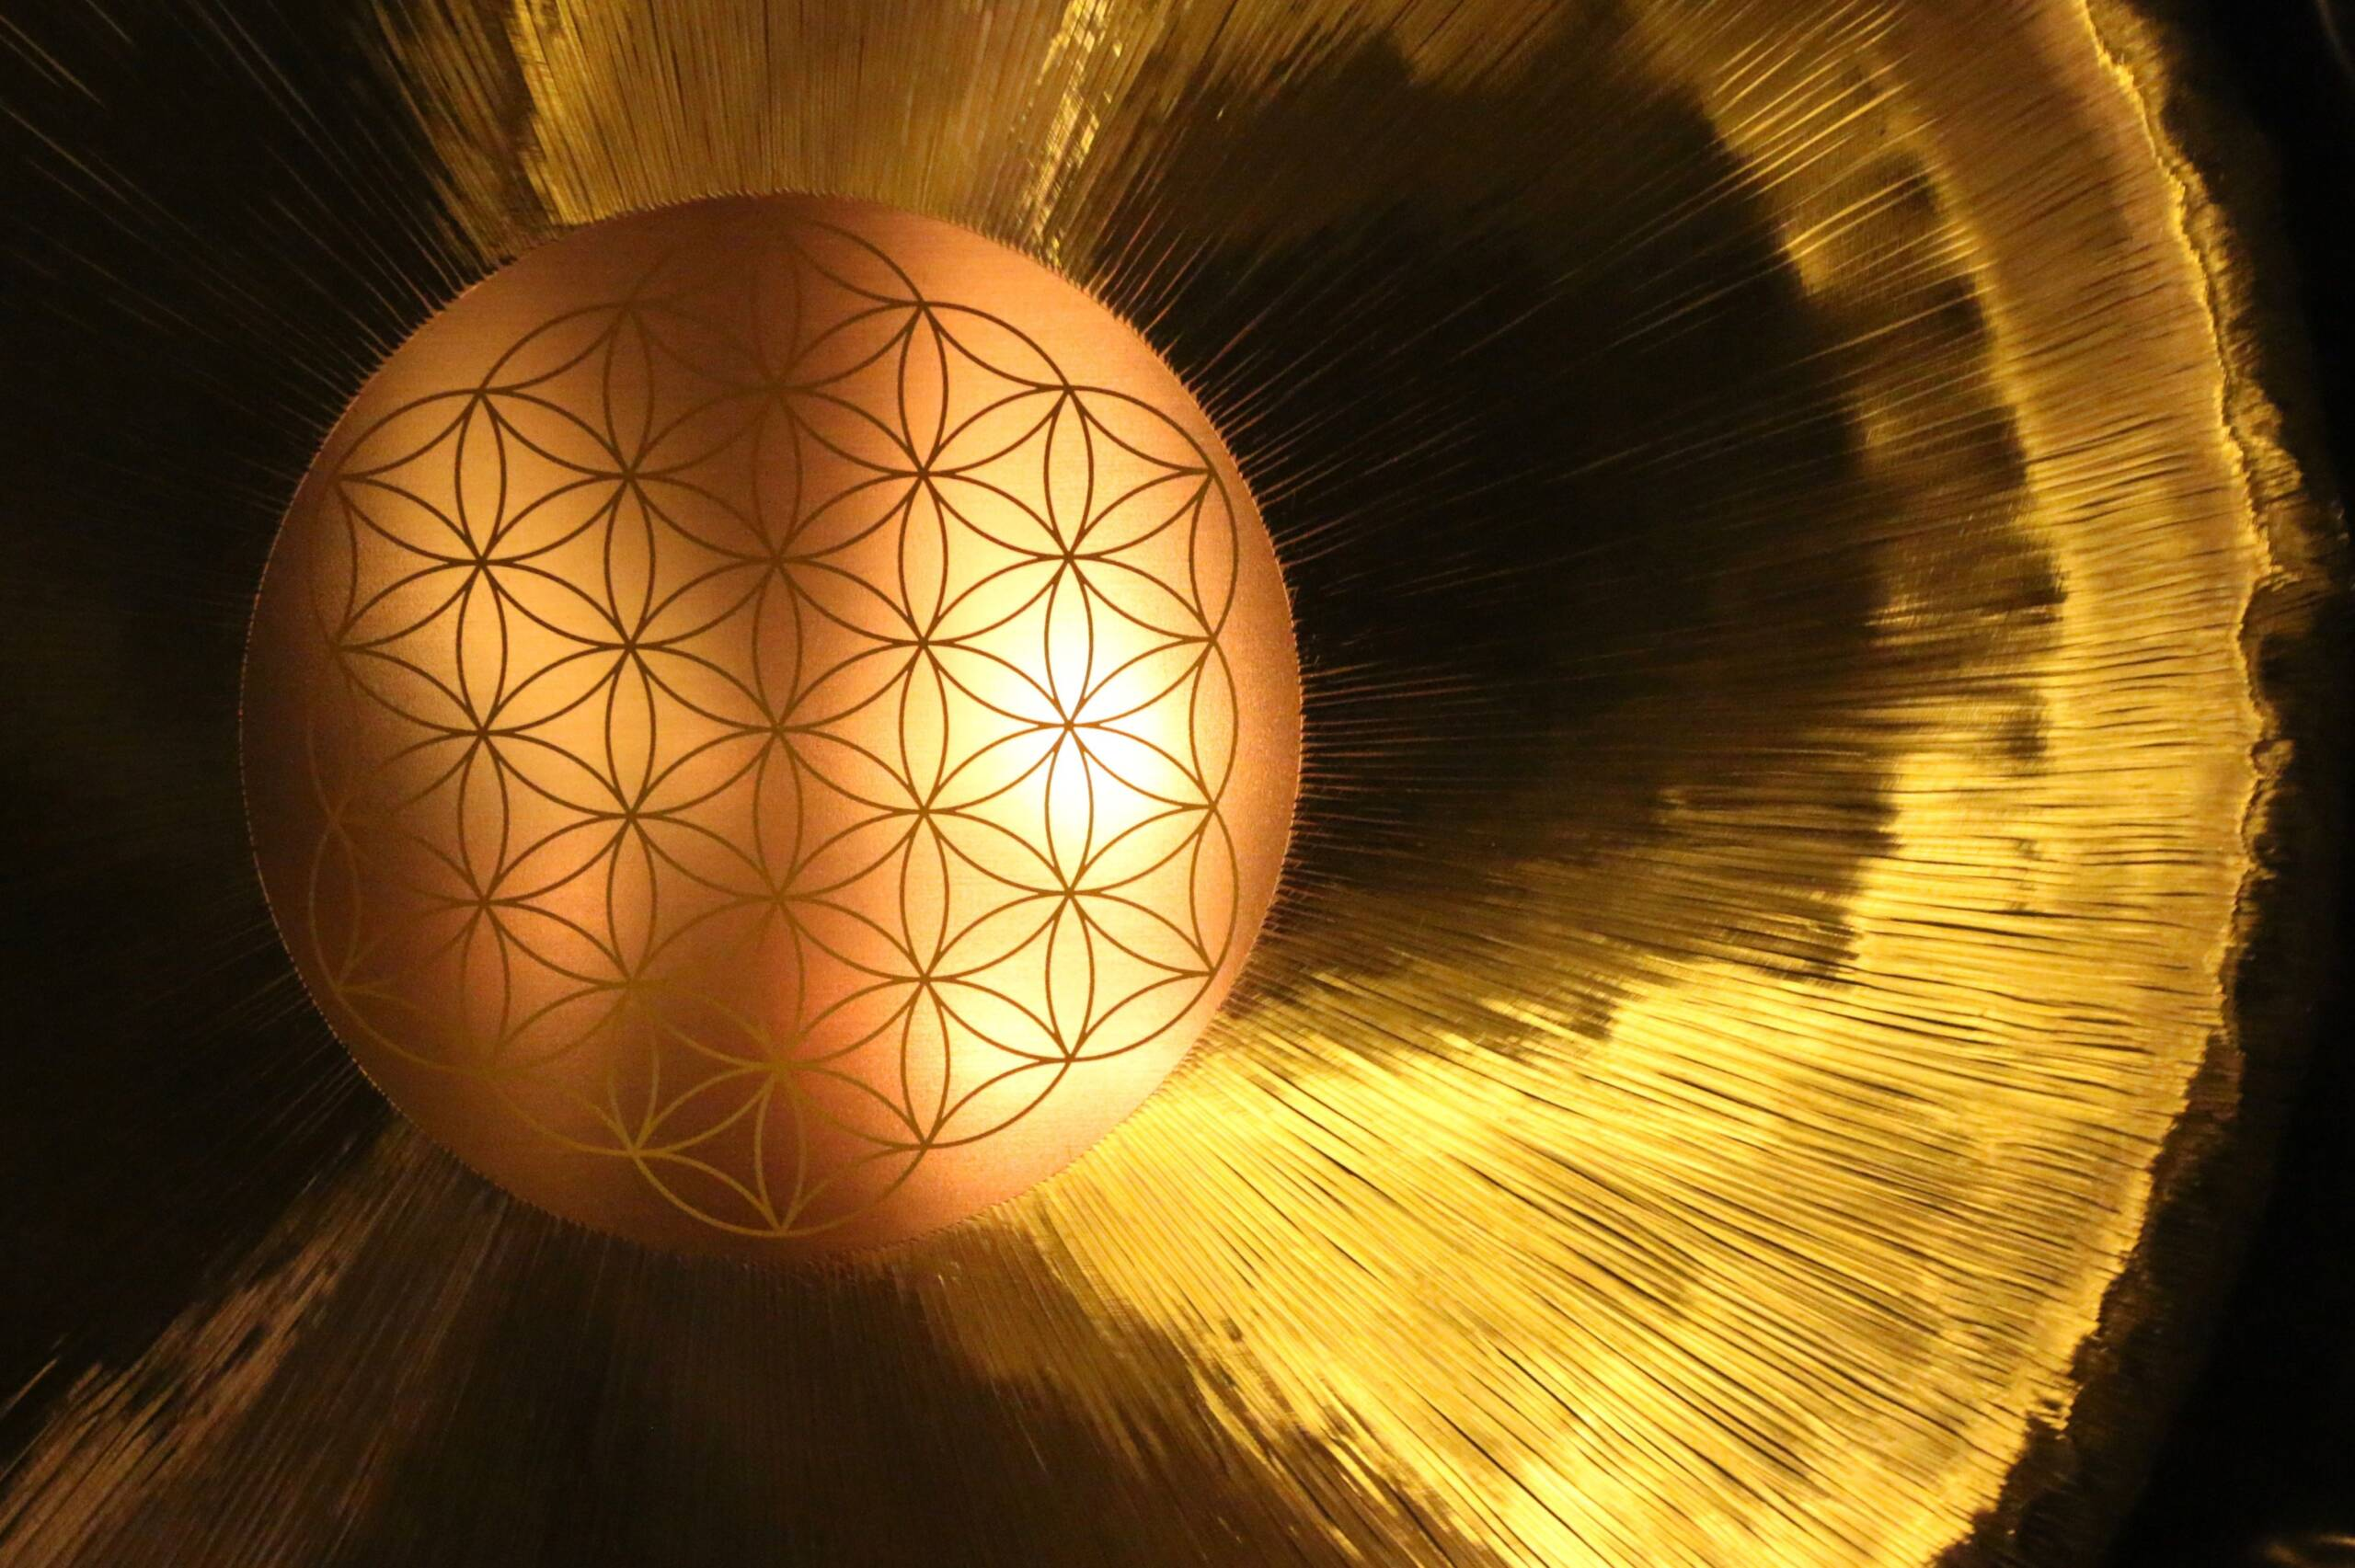 Gong Resonance Therapy